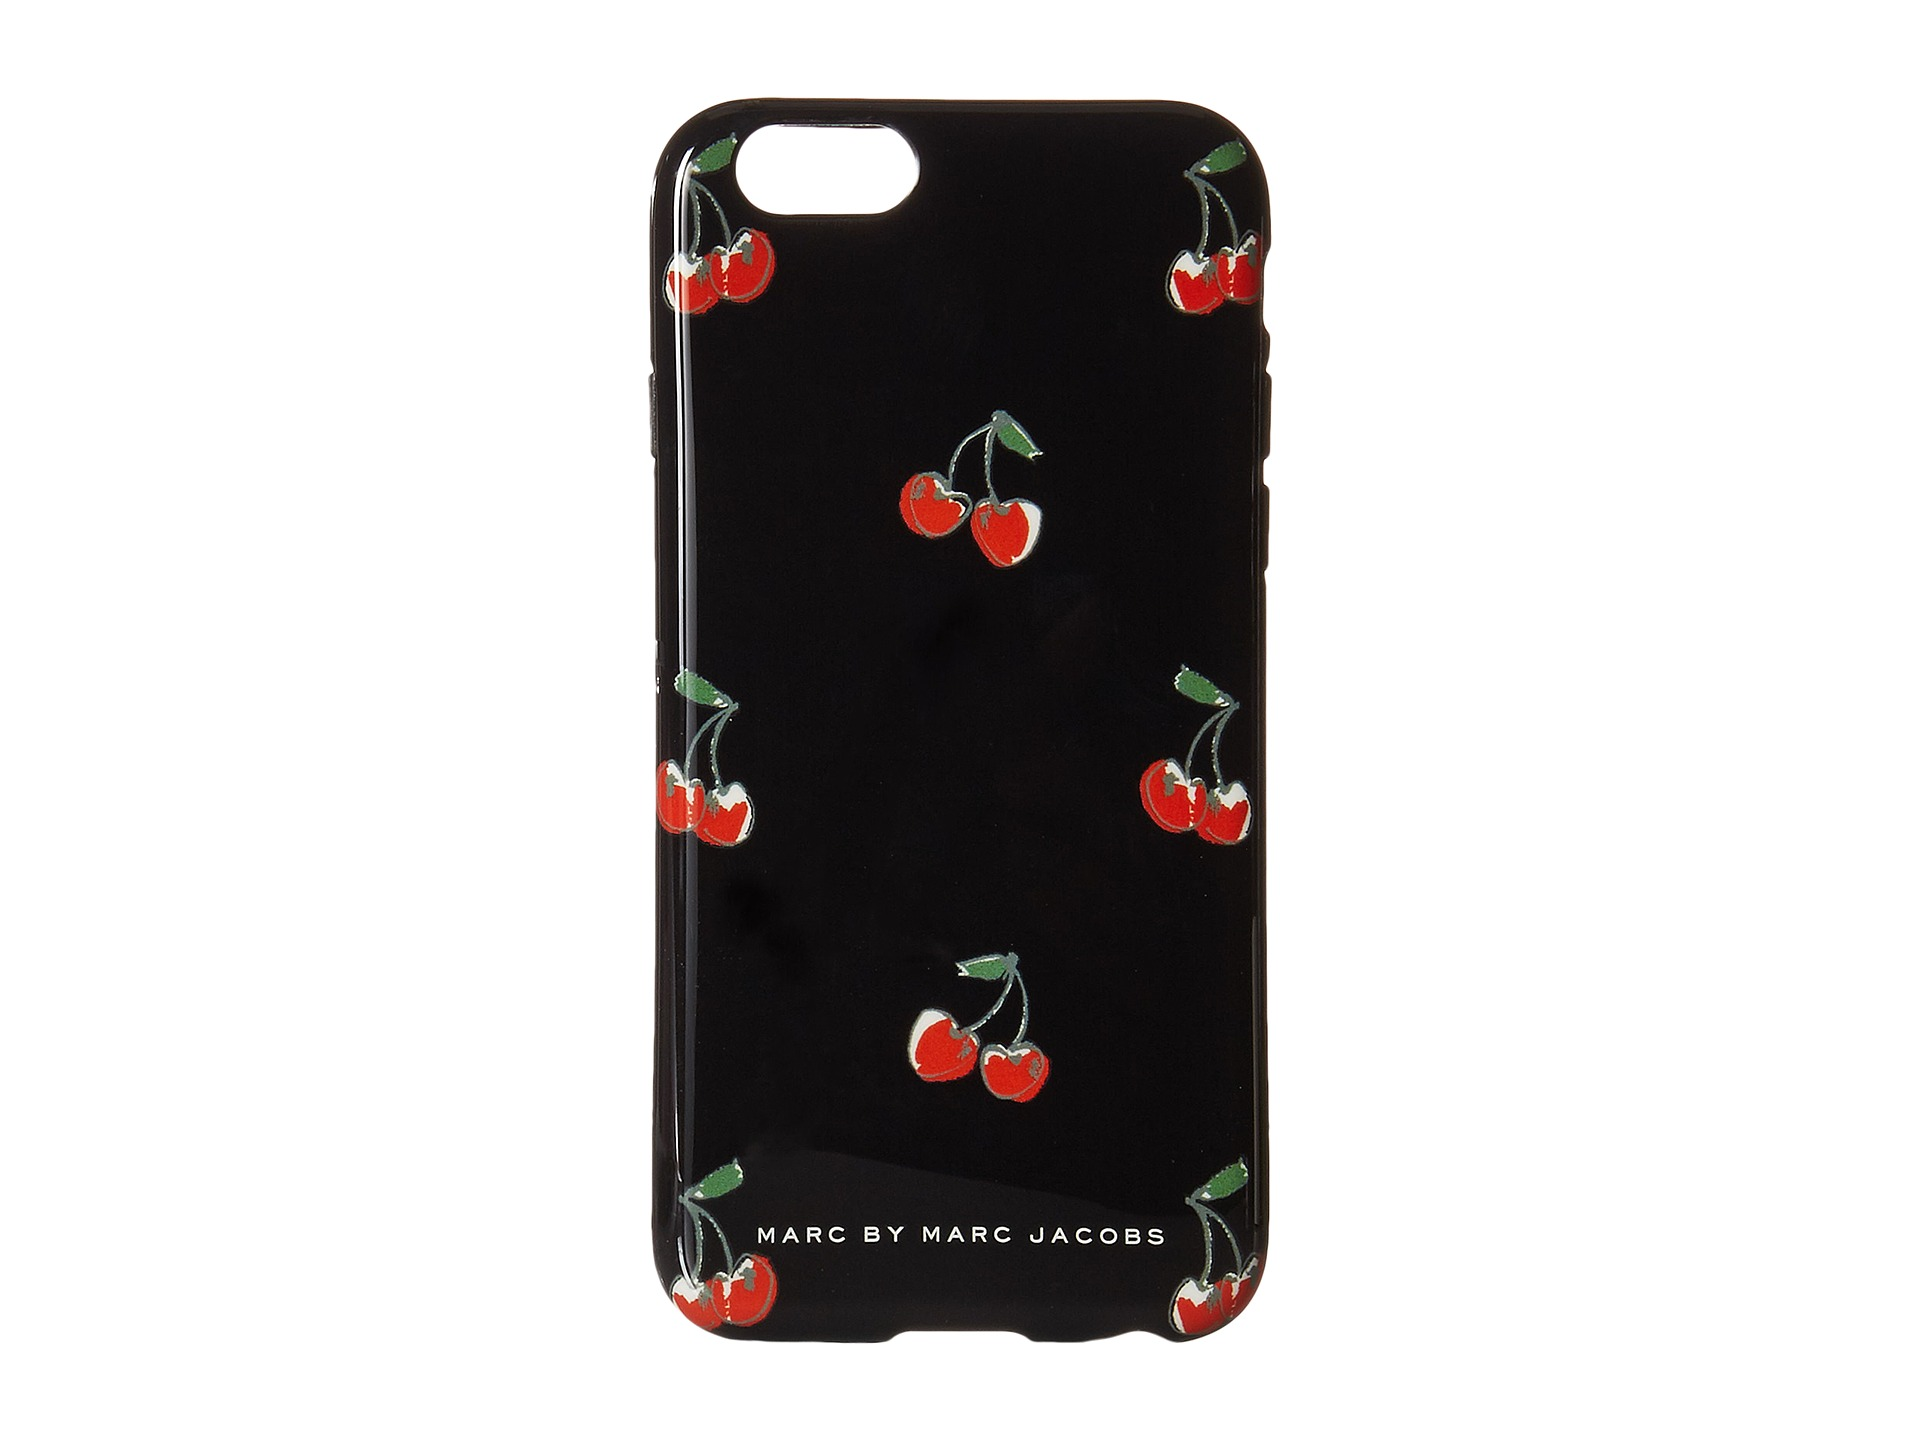 Marc by Marc Jacobs Phone Cases Cherry iPhone® 6s Case ...